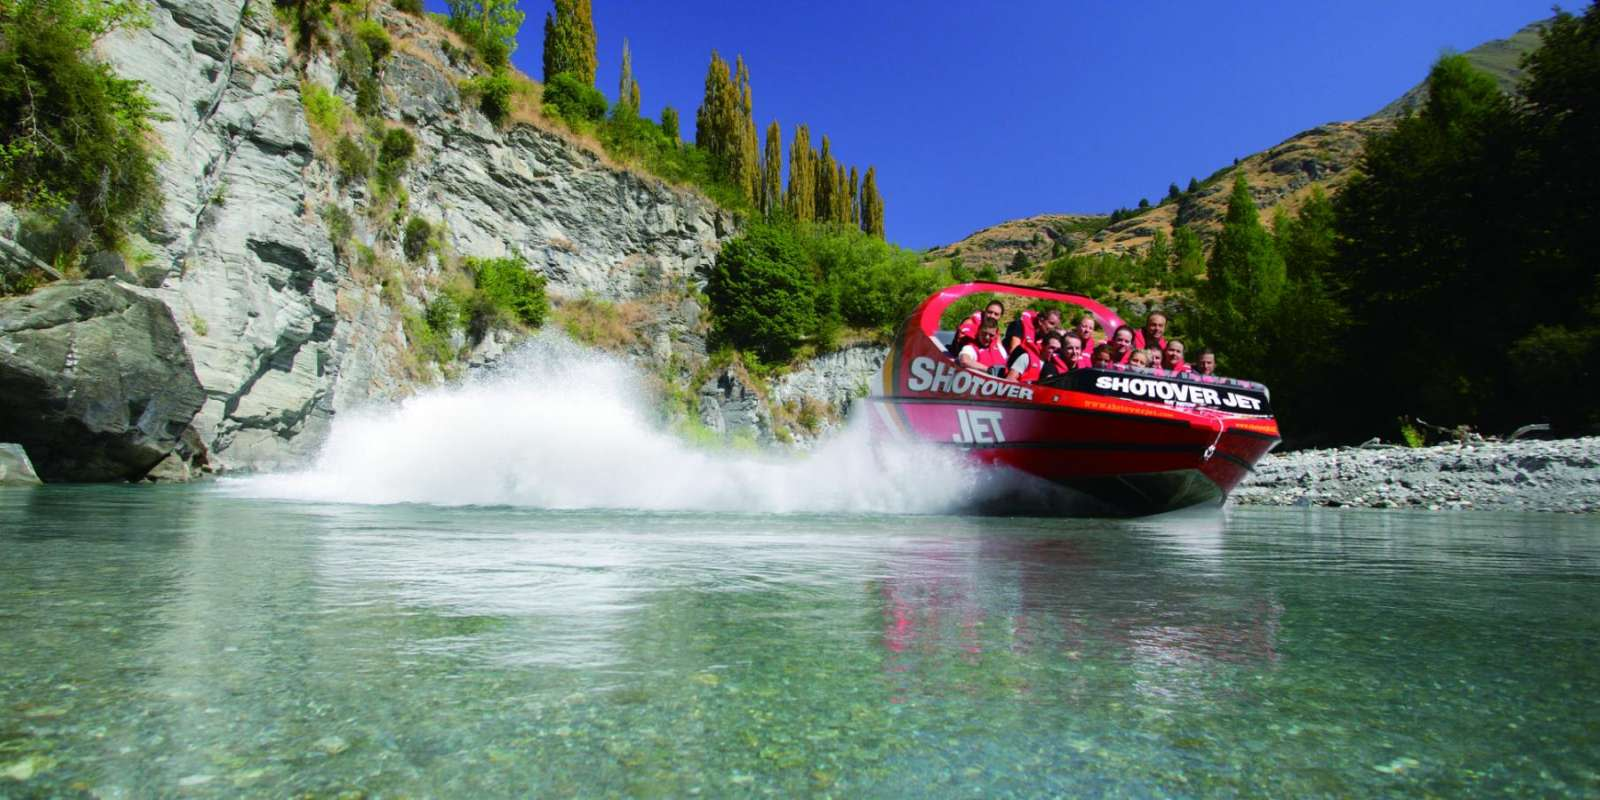 Shotover Jet speeding down the river